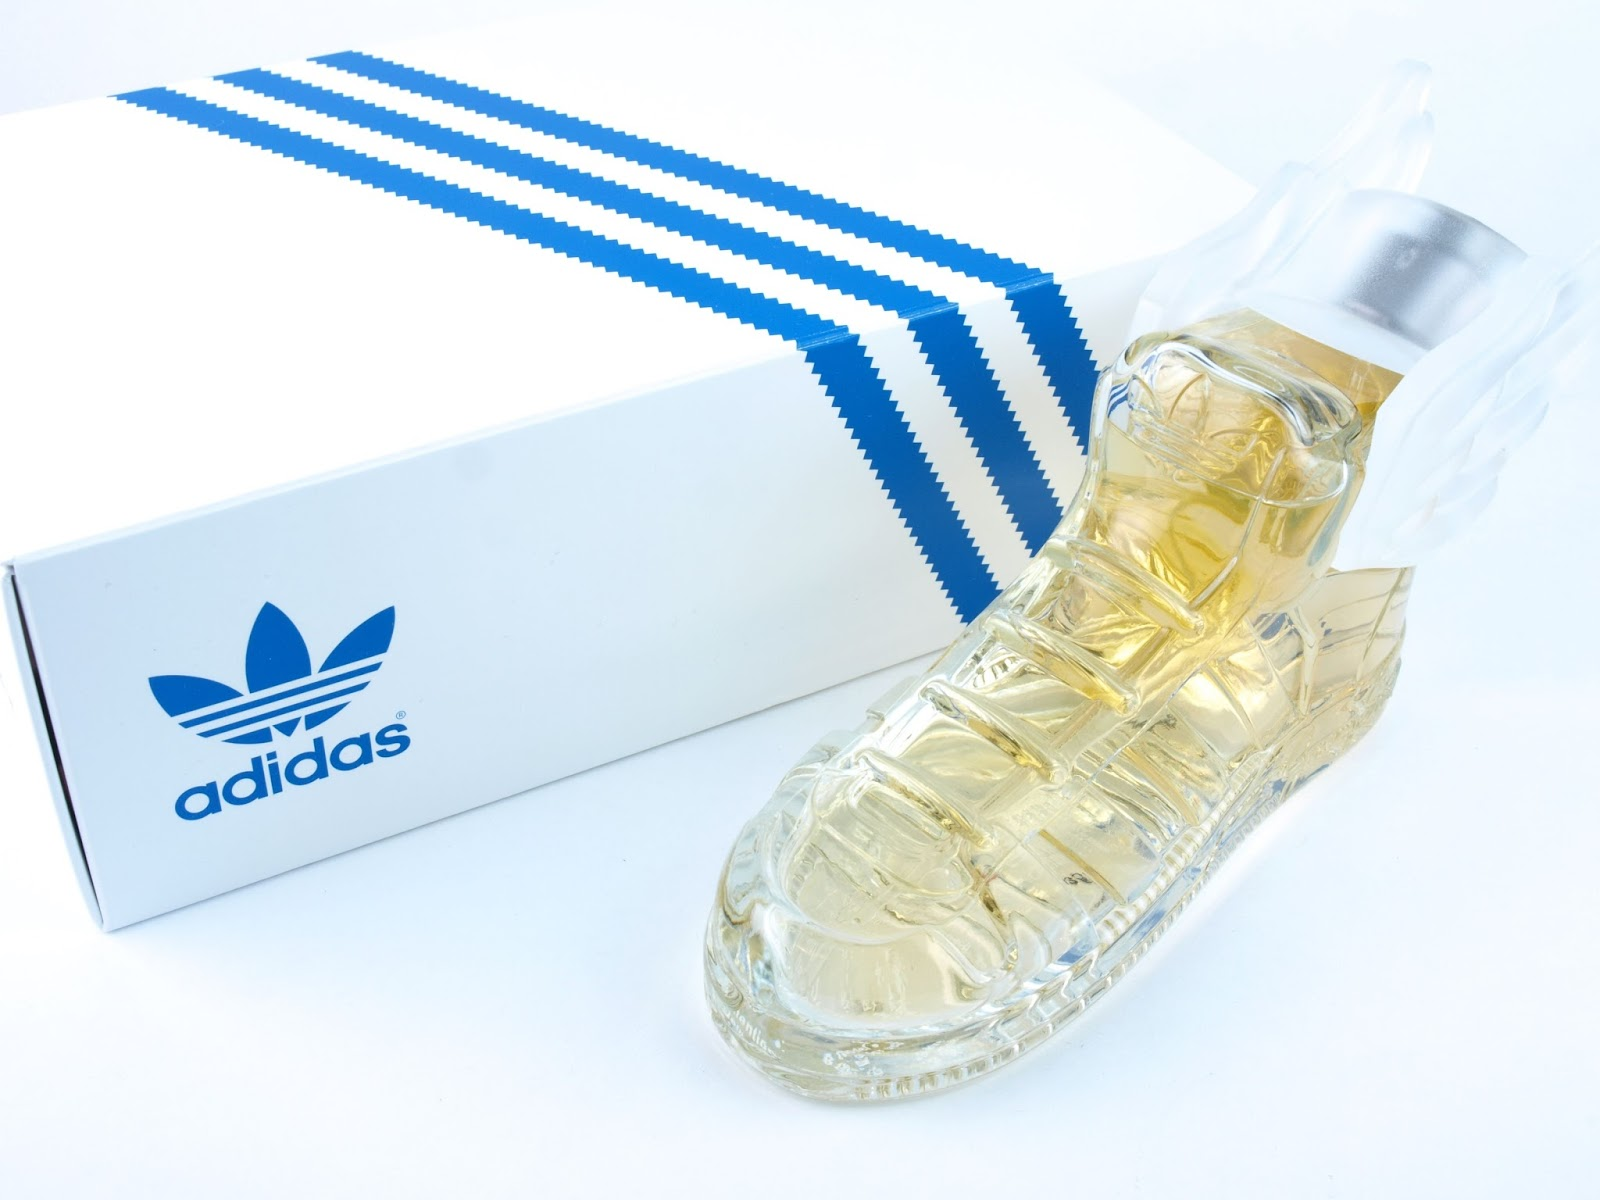 Adidas Originals by Jeremy Scott Eau de Toilette for Women & Men: Review